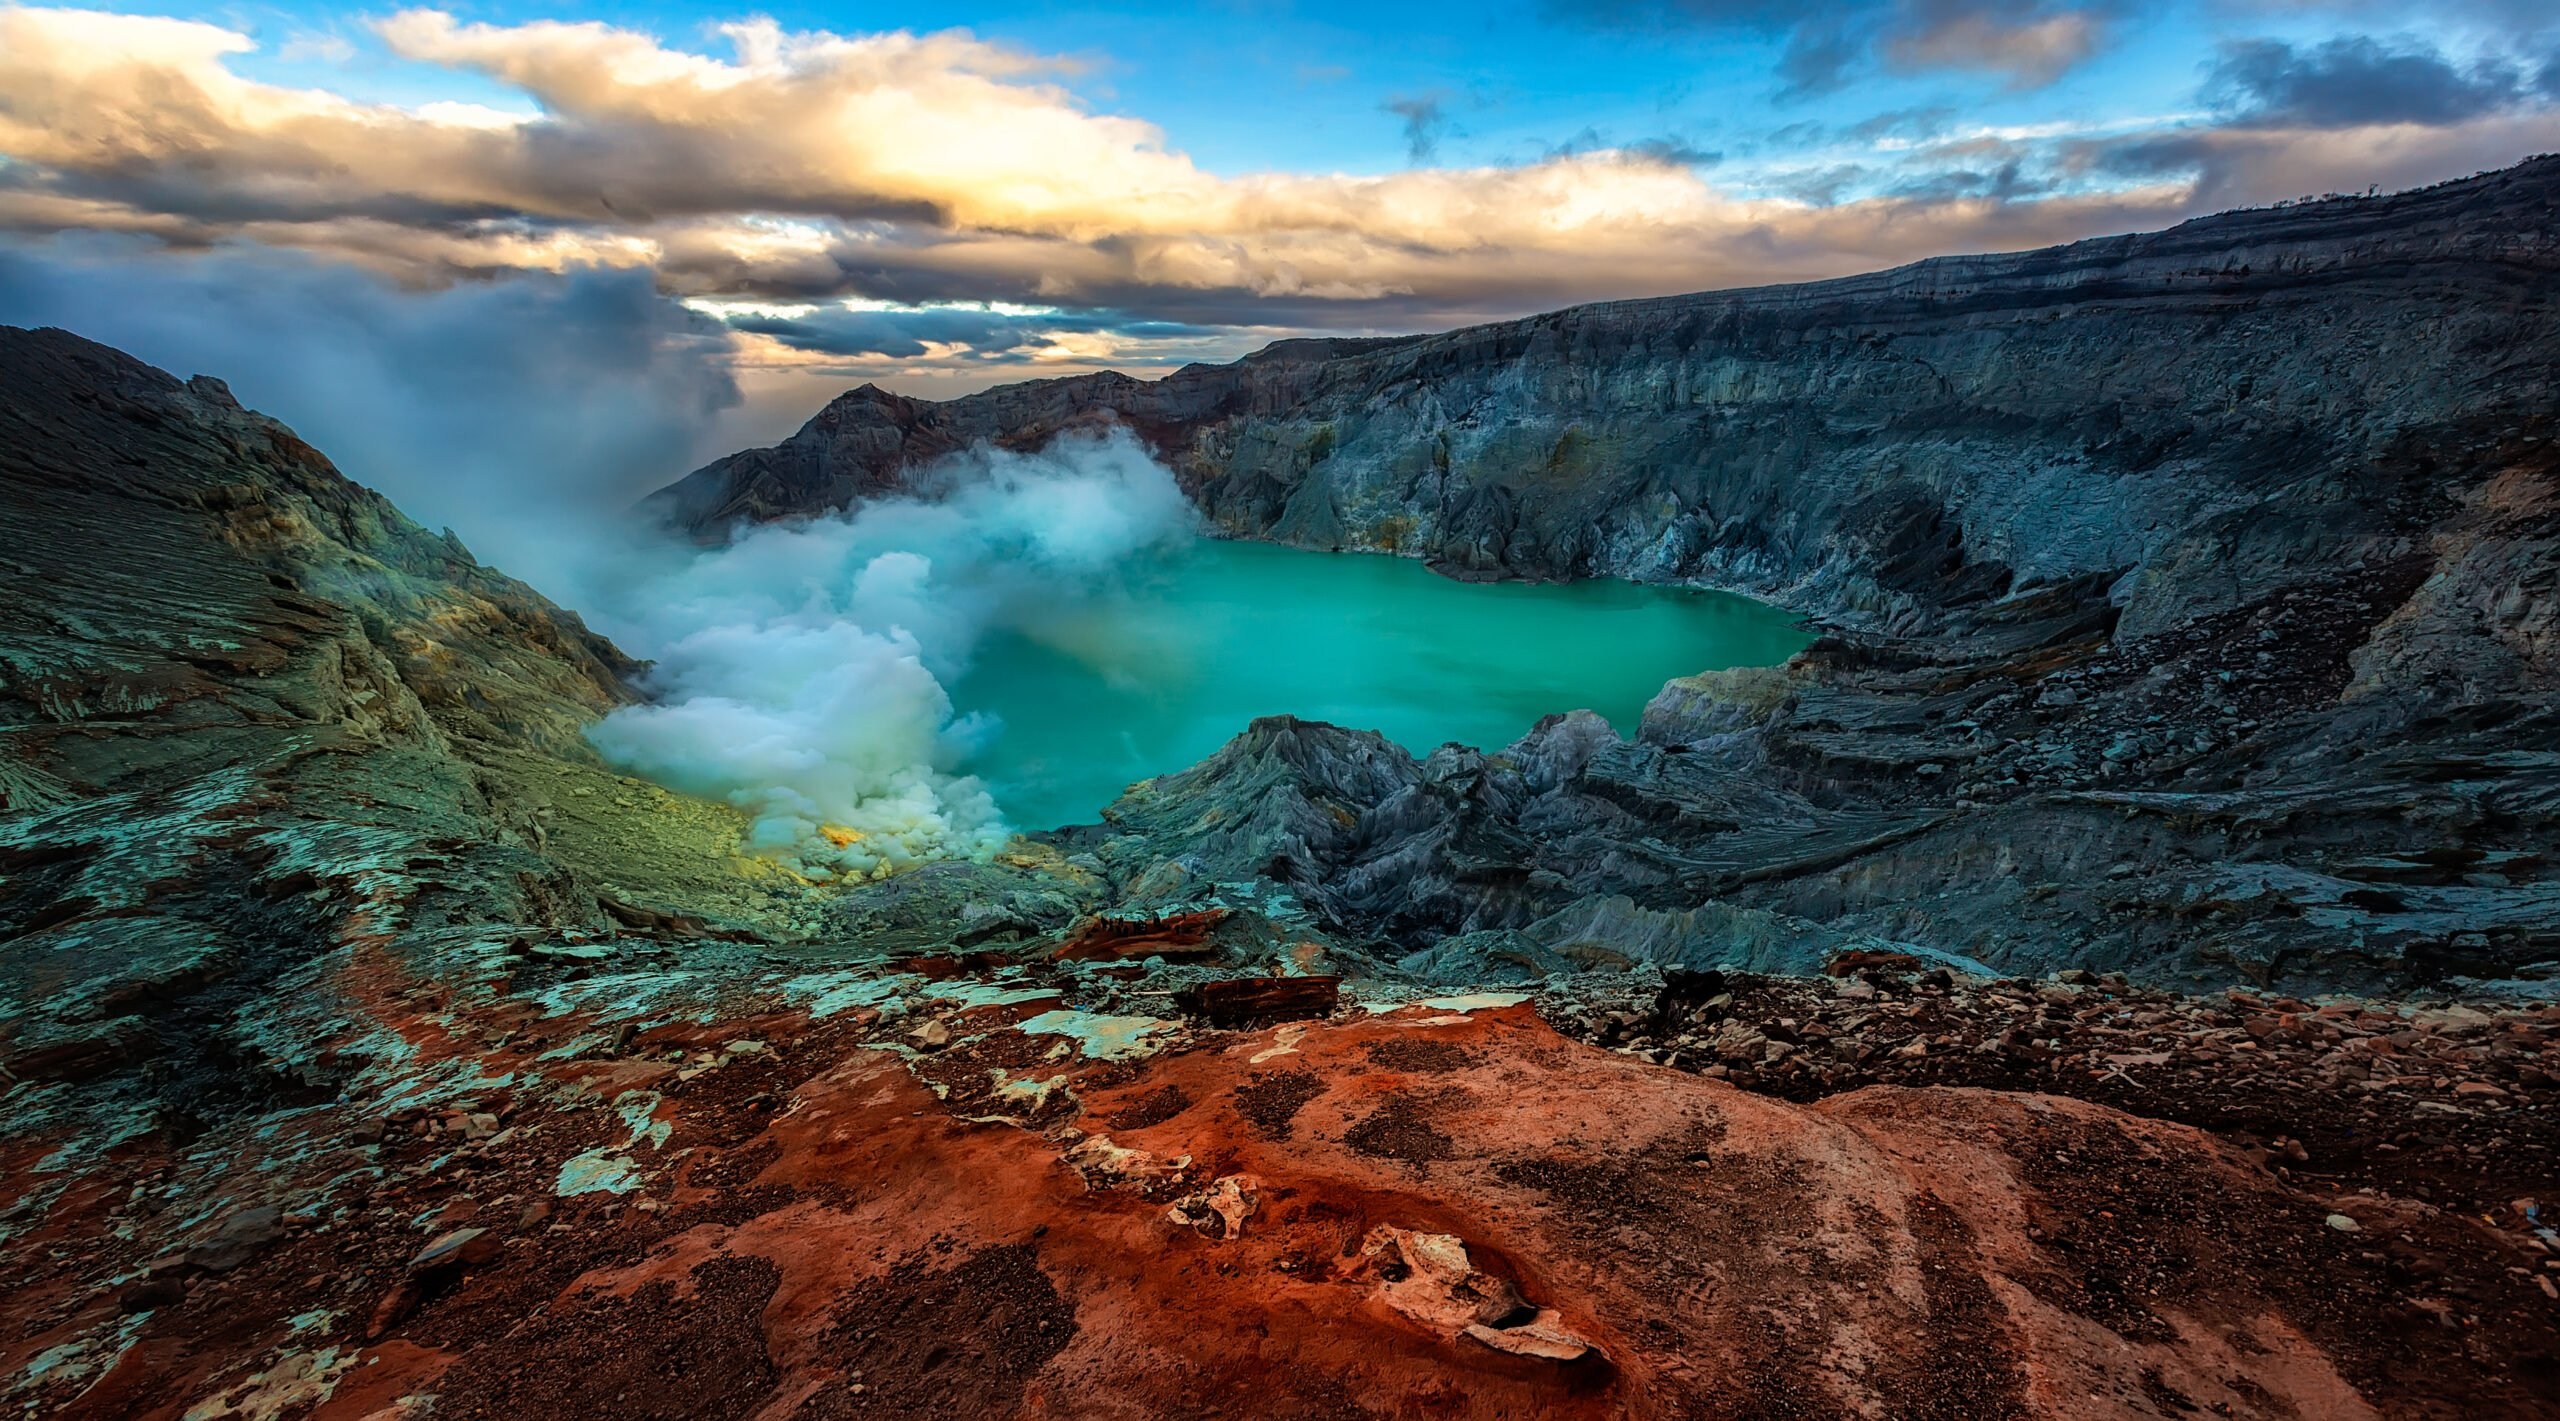 Hike Ijen Crater In Our Mount Bromo Sunrise & Ijen Blue Fire 2 Day V.i.p Tour